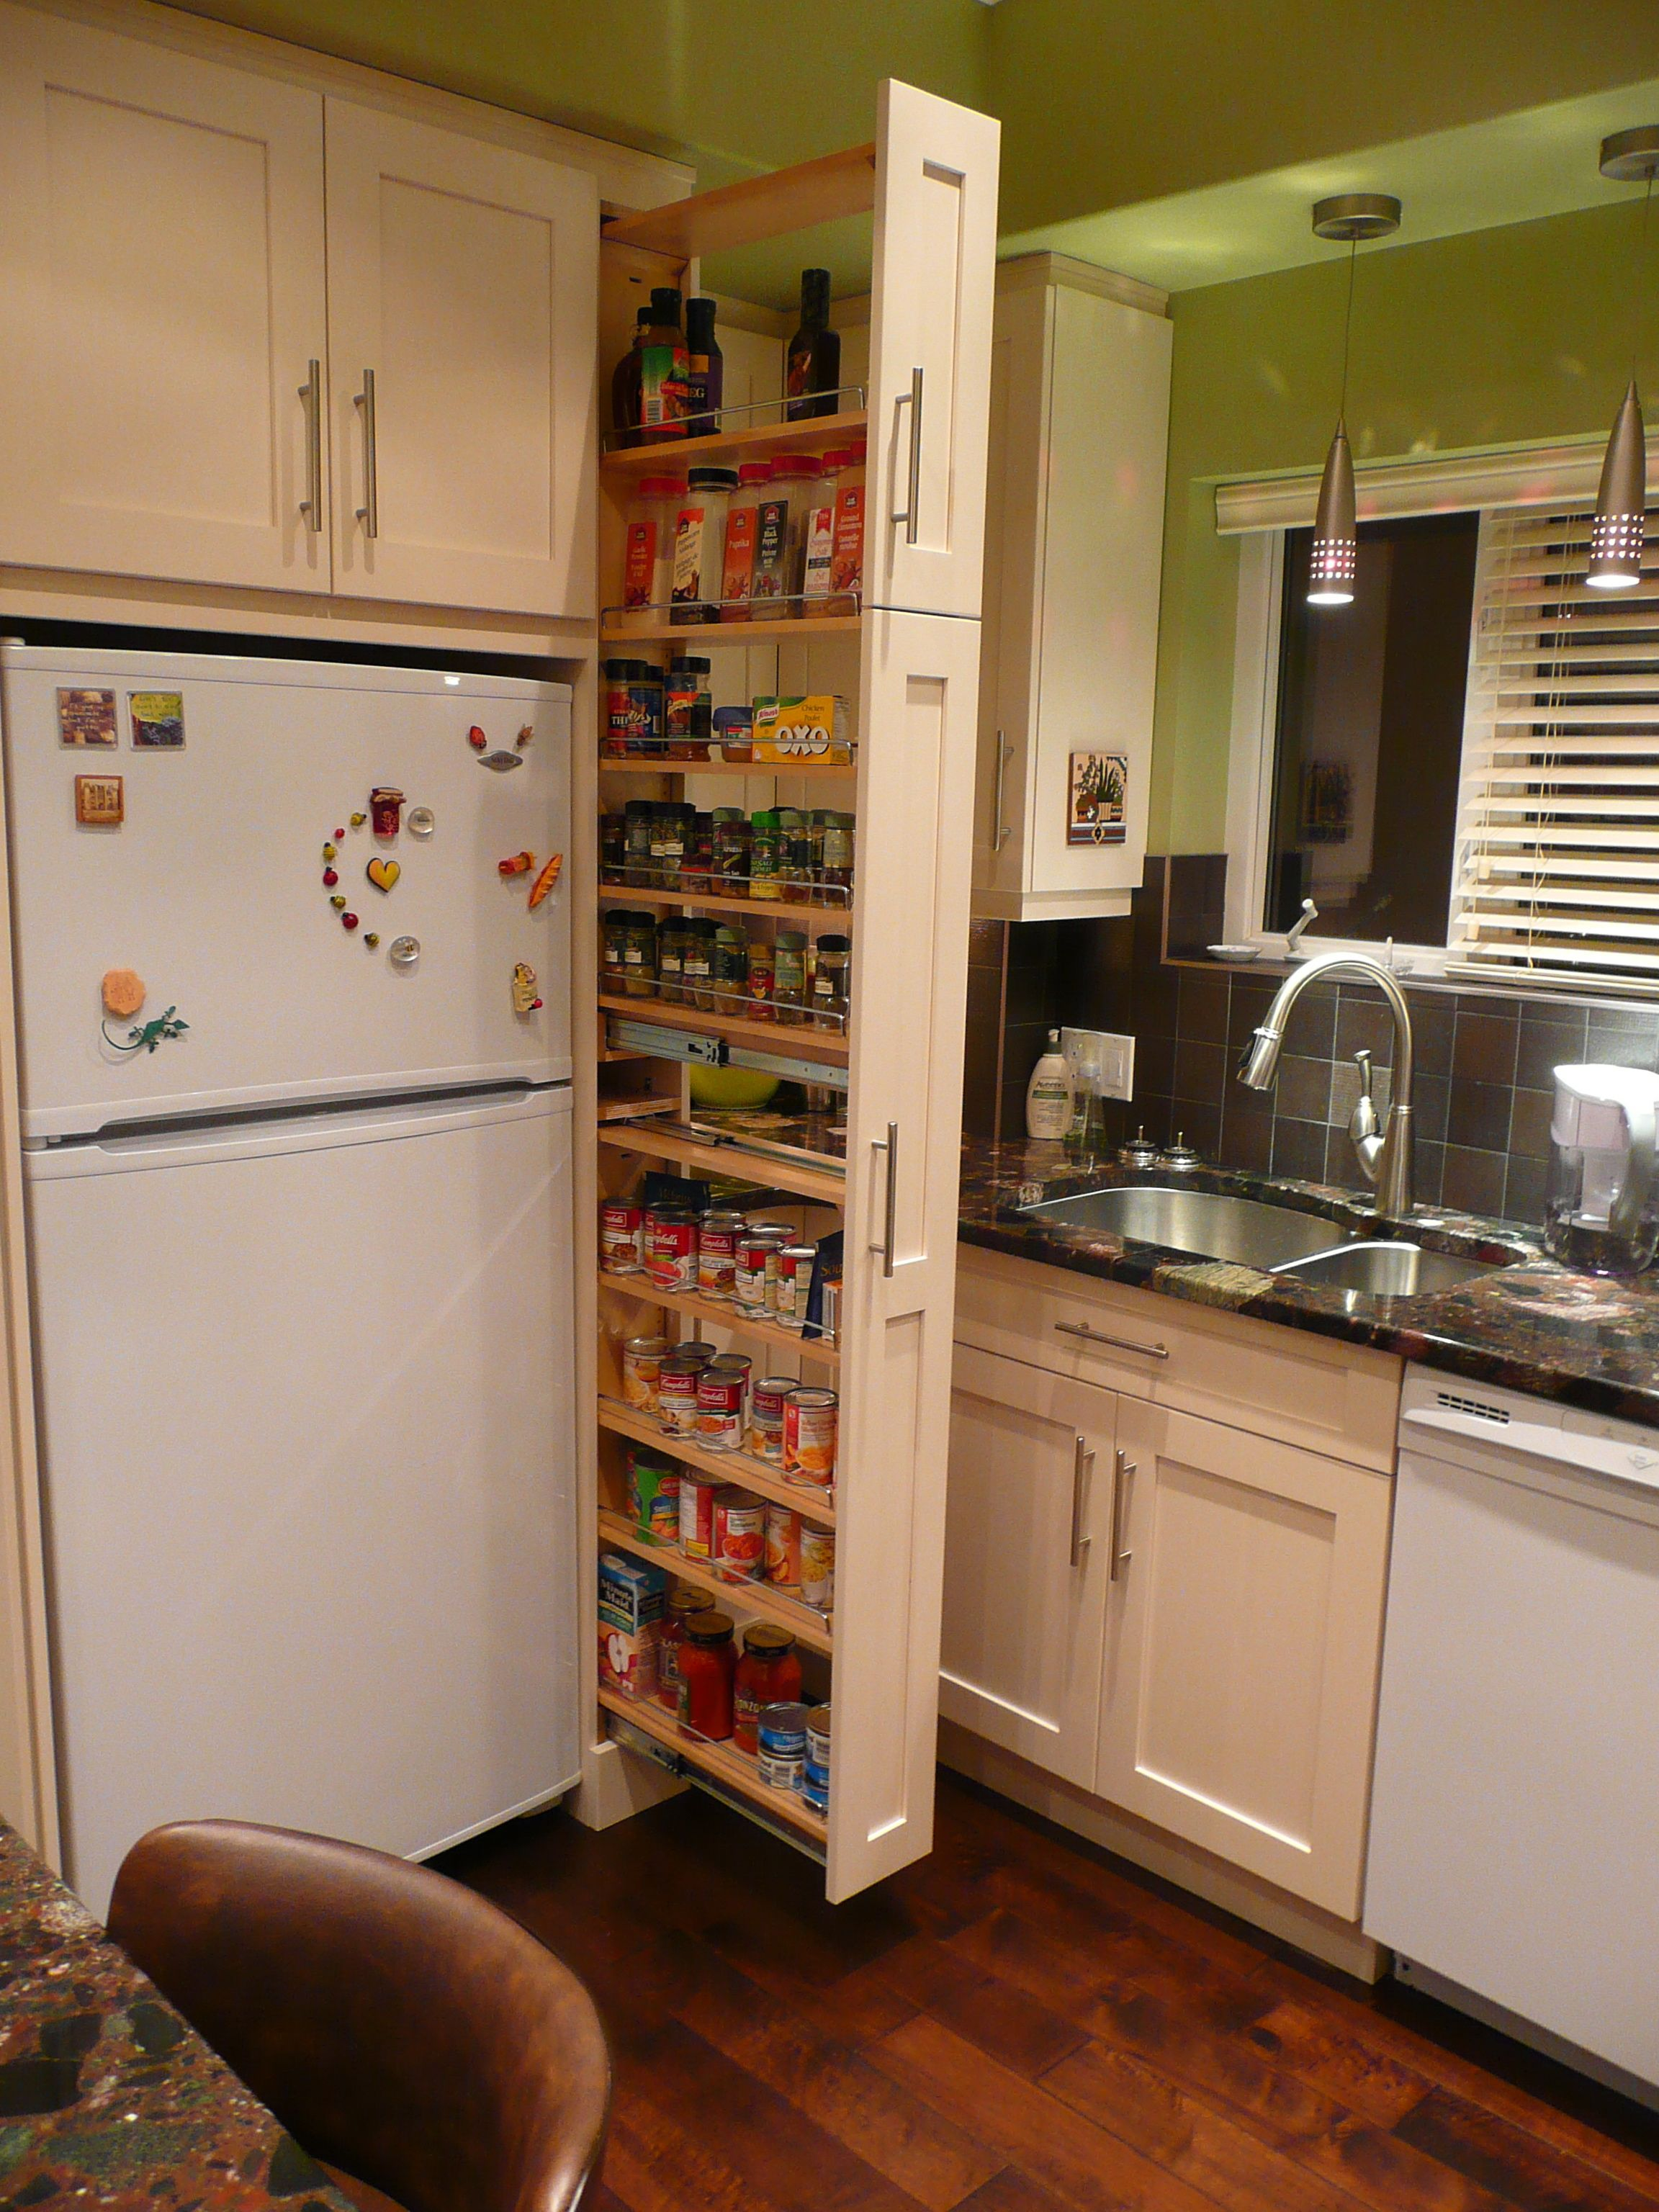 The narrow cabinet beside the fridge pulls. The narrow cabinet beside the fridge pulls out to reveal a spice